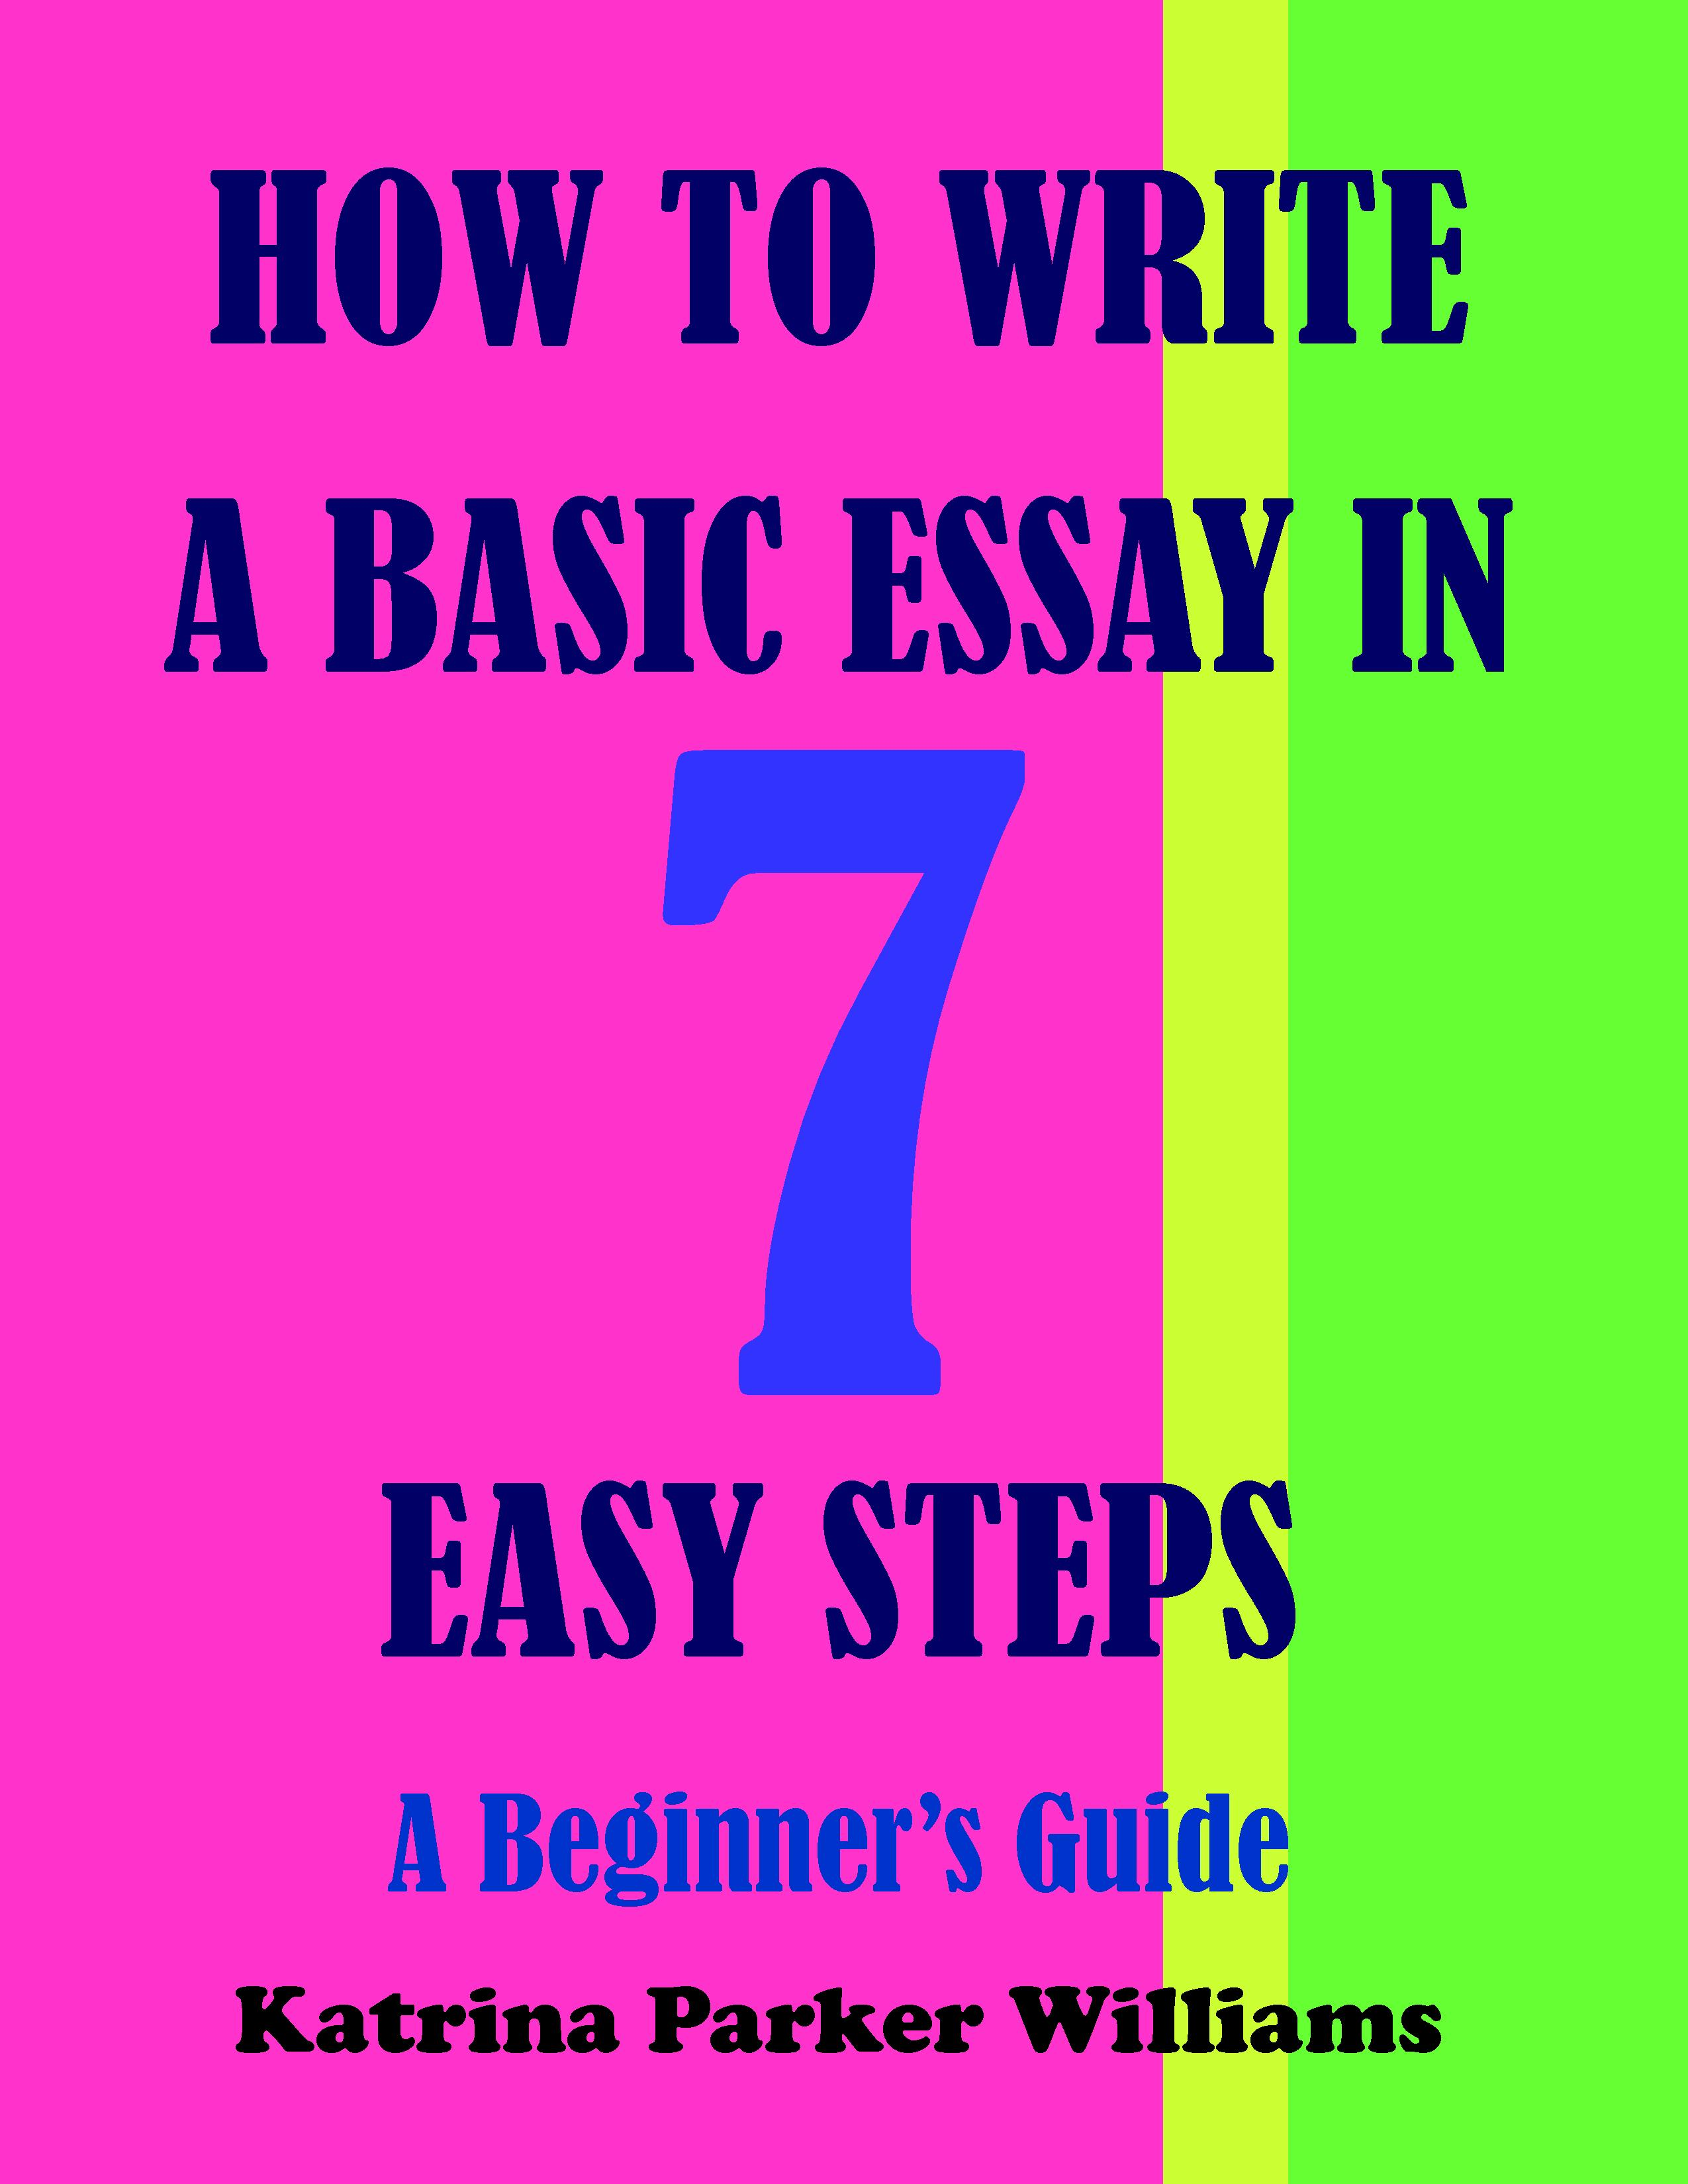 011 Essay Example How To Write Basic In Seven Easy Steps Staggering An Telugu Mla Format Pdf Full